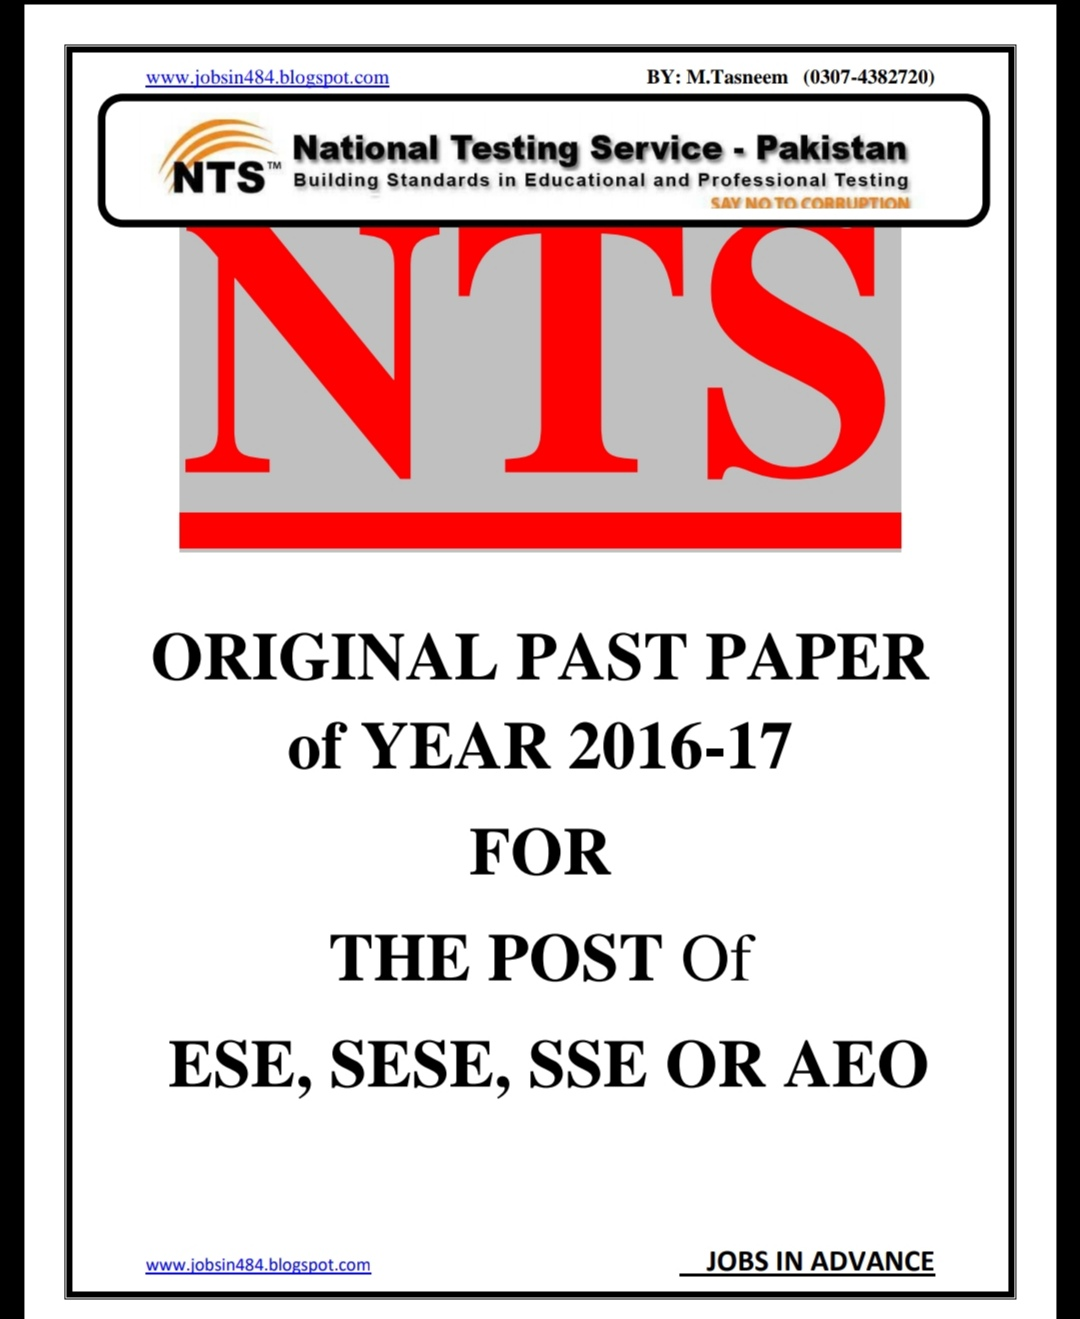 Top Rated Pakistani NewsPapers: Solved MCQS